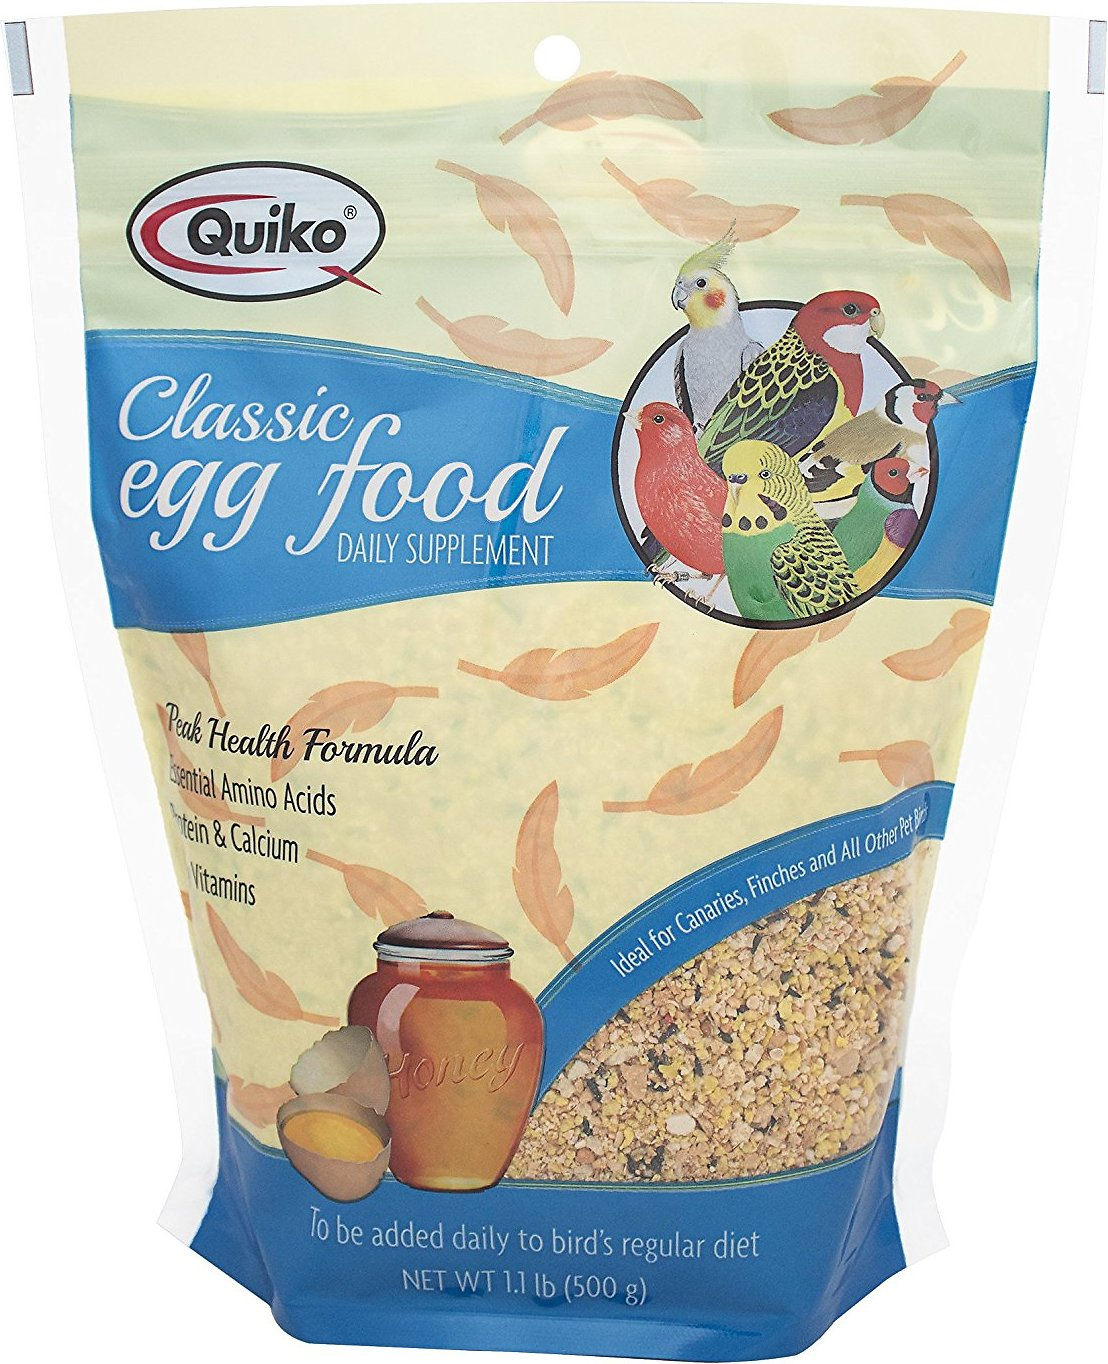 Quiko classic egg food supplement for canaries finches 11 lb bag roll over image to zoom in forumfinder Images